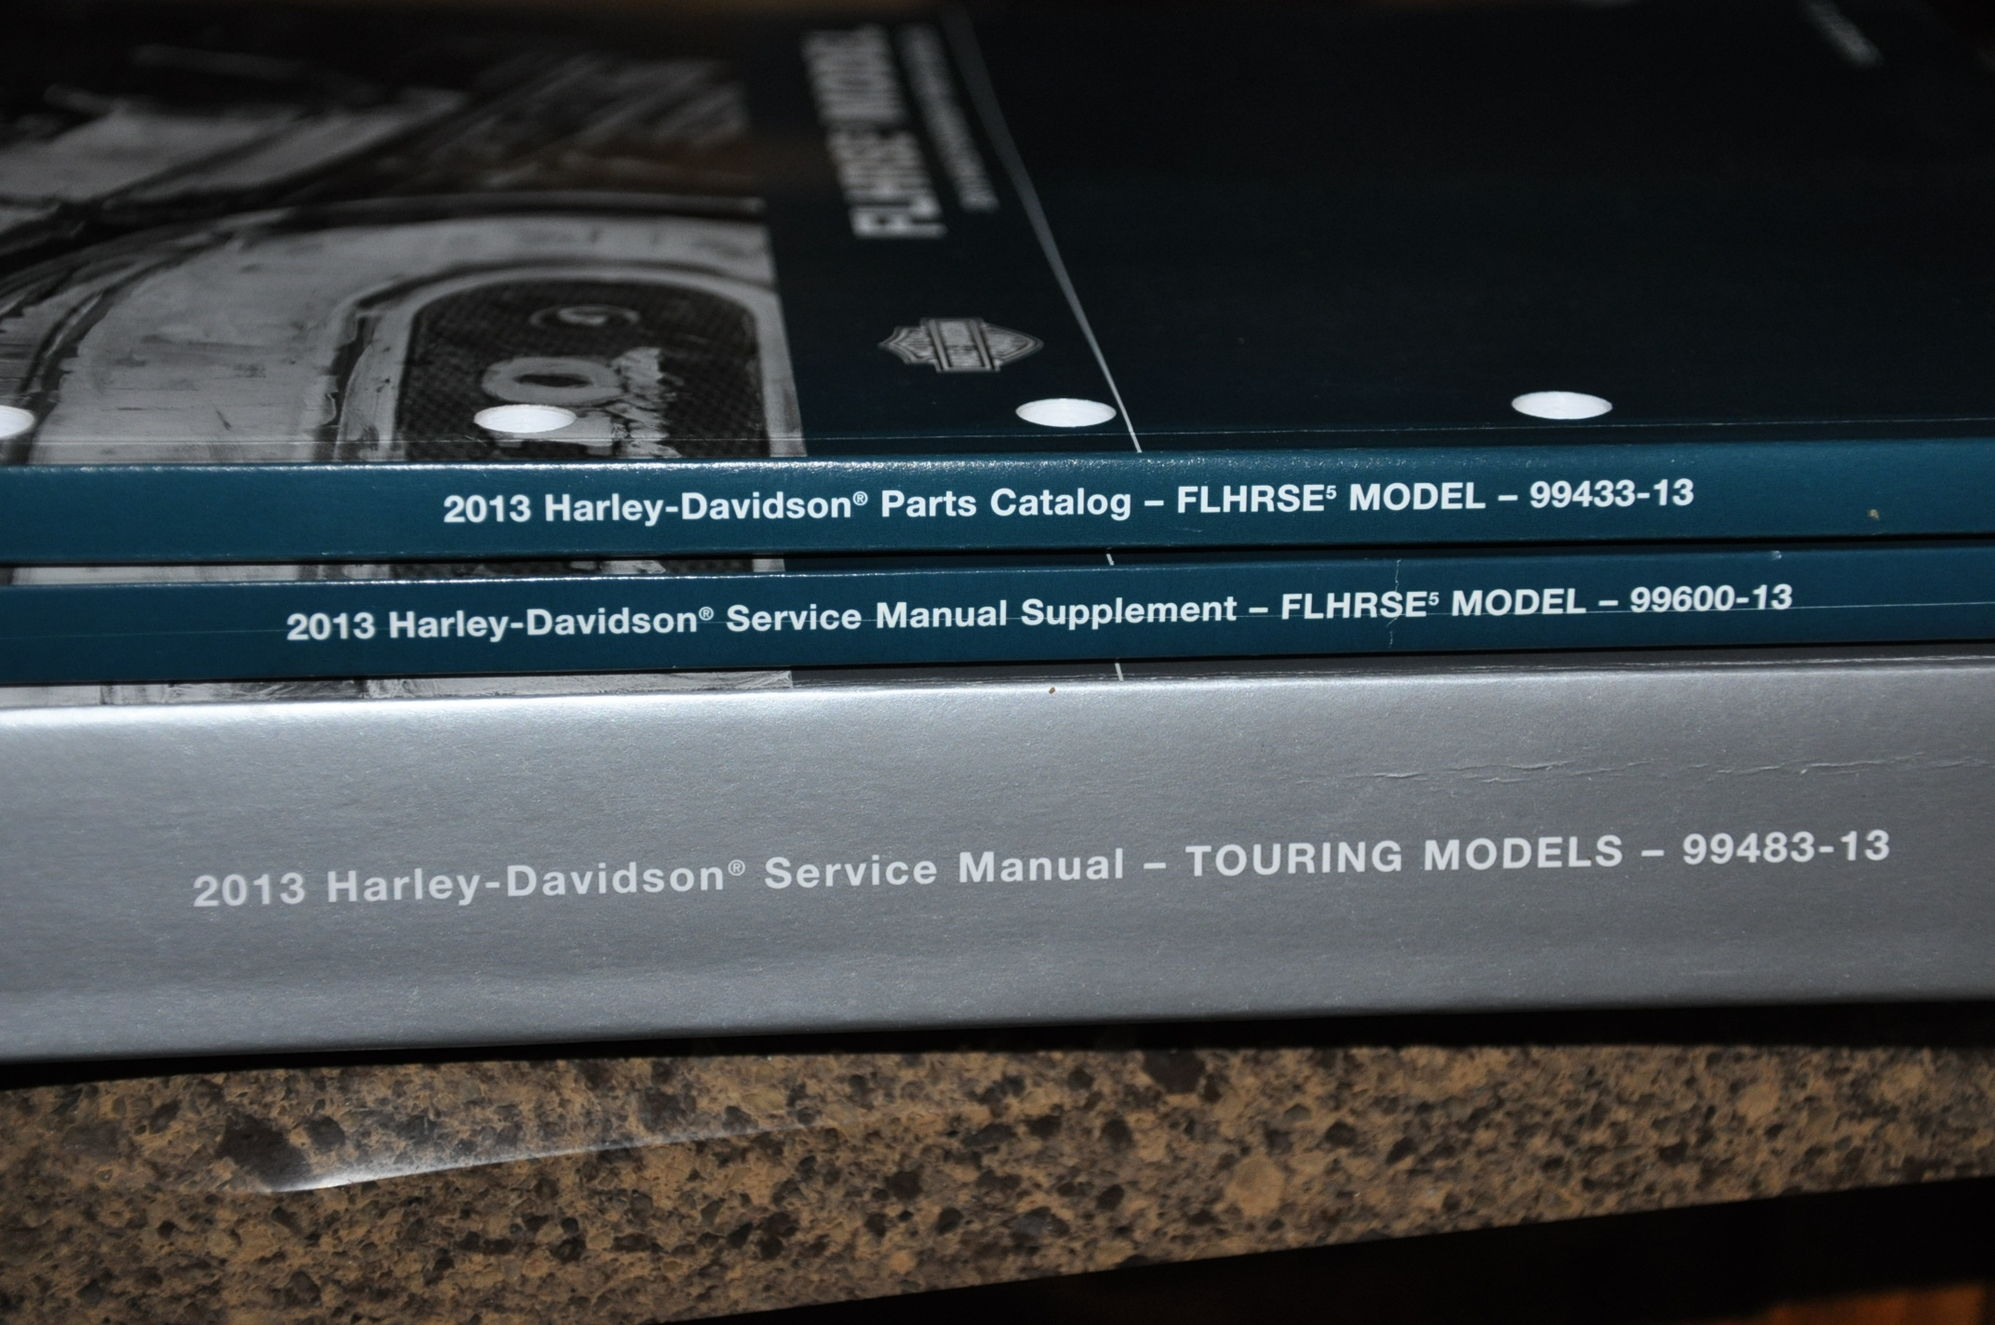 2013 Hd Road King Manual 2000 Harley Flhpi Wiring Diagram Array Parts Trusted Rh Dafpods Co